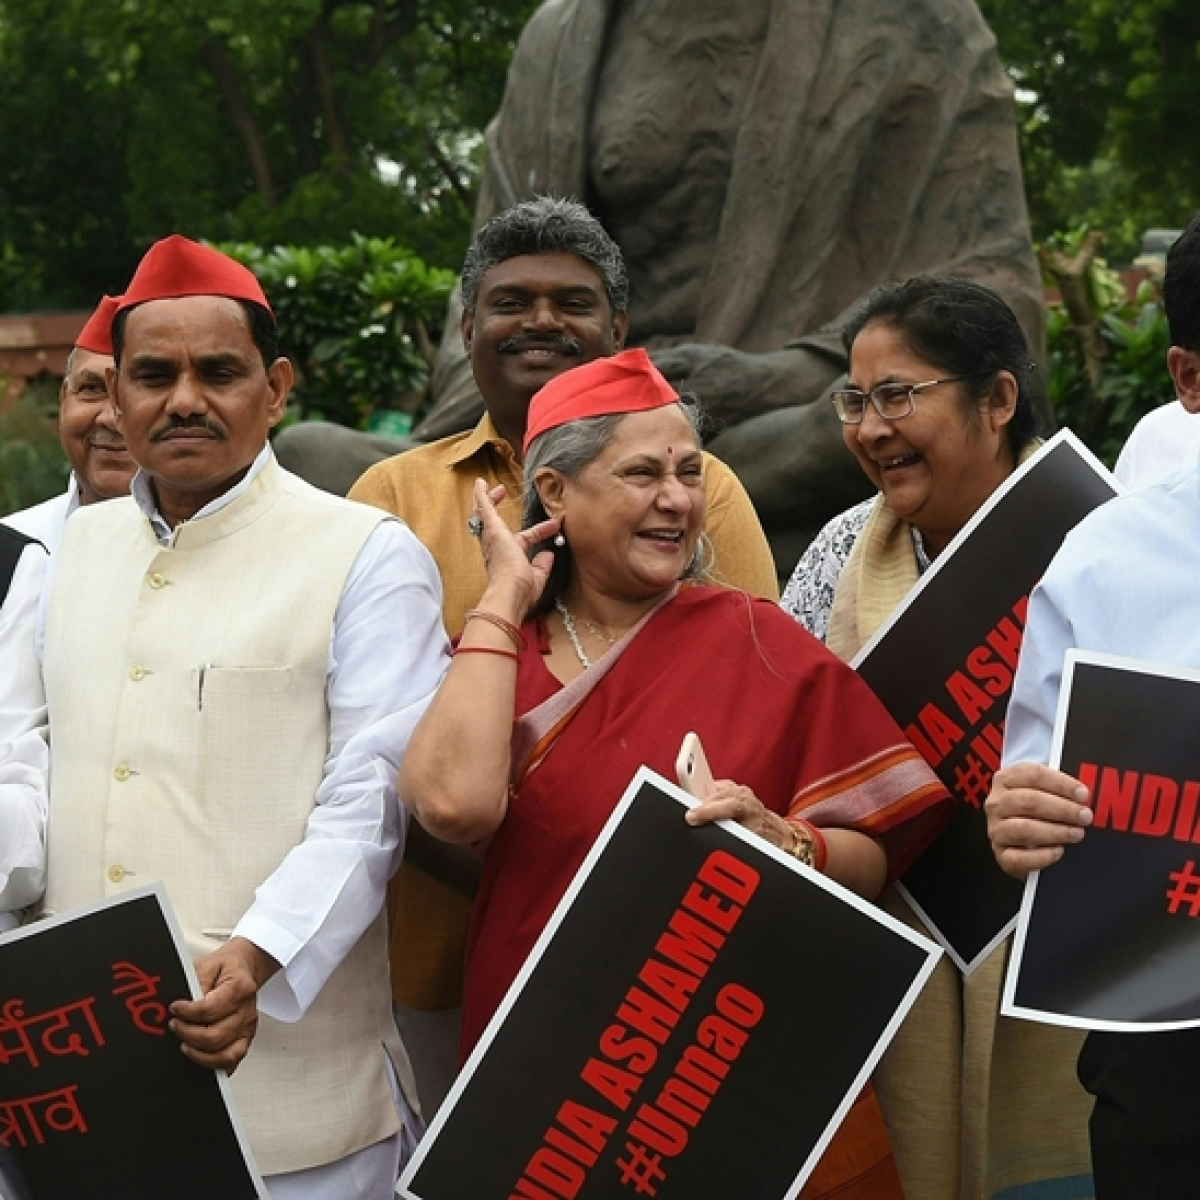 Jaya Bachchan receives flak for laughing amid protests for Unnao rape survivor's justice